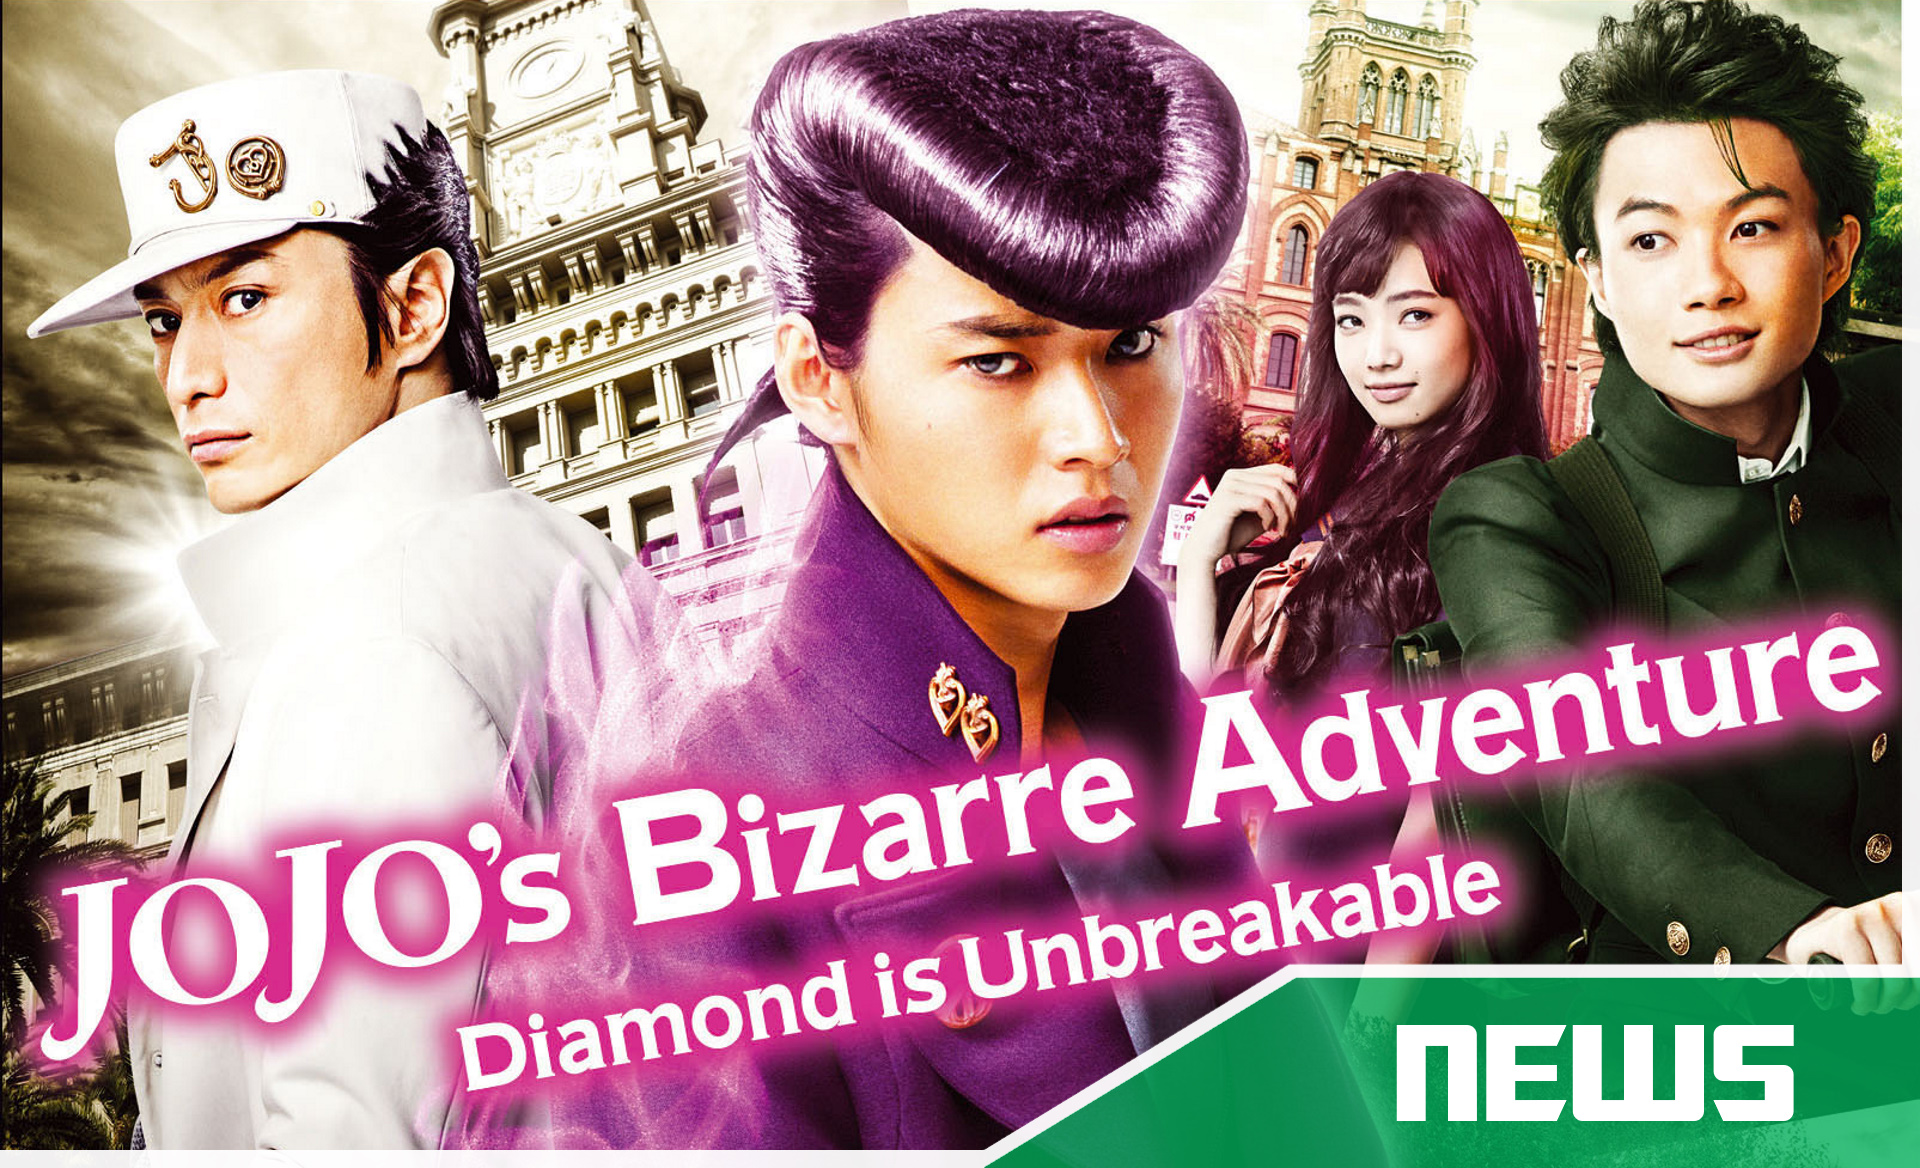 JoJo's Bizarre Adventure: Diamond is Unbreakable: Chapter 1 (Live-Action Movie) Now Available on Blu-Ray/DVD